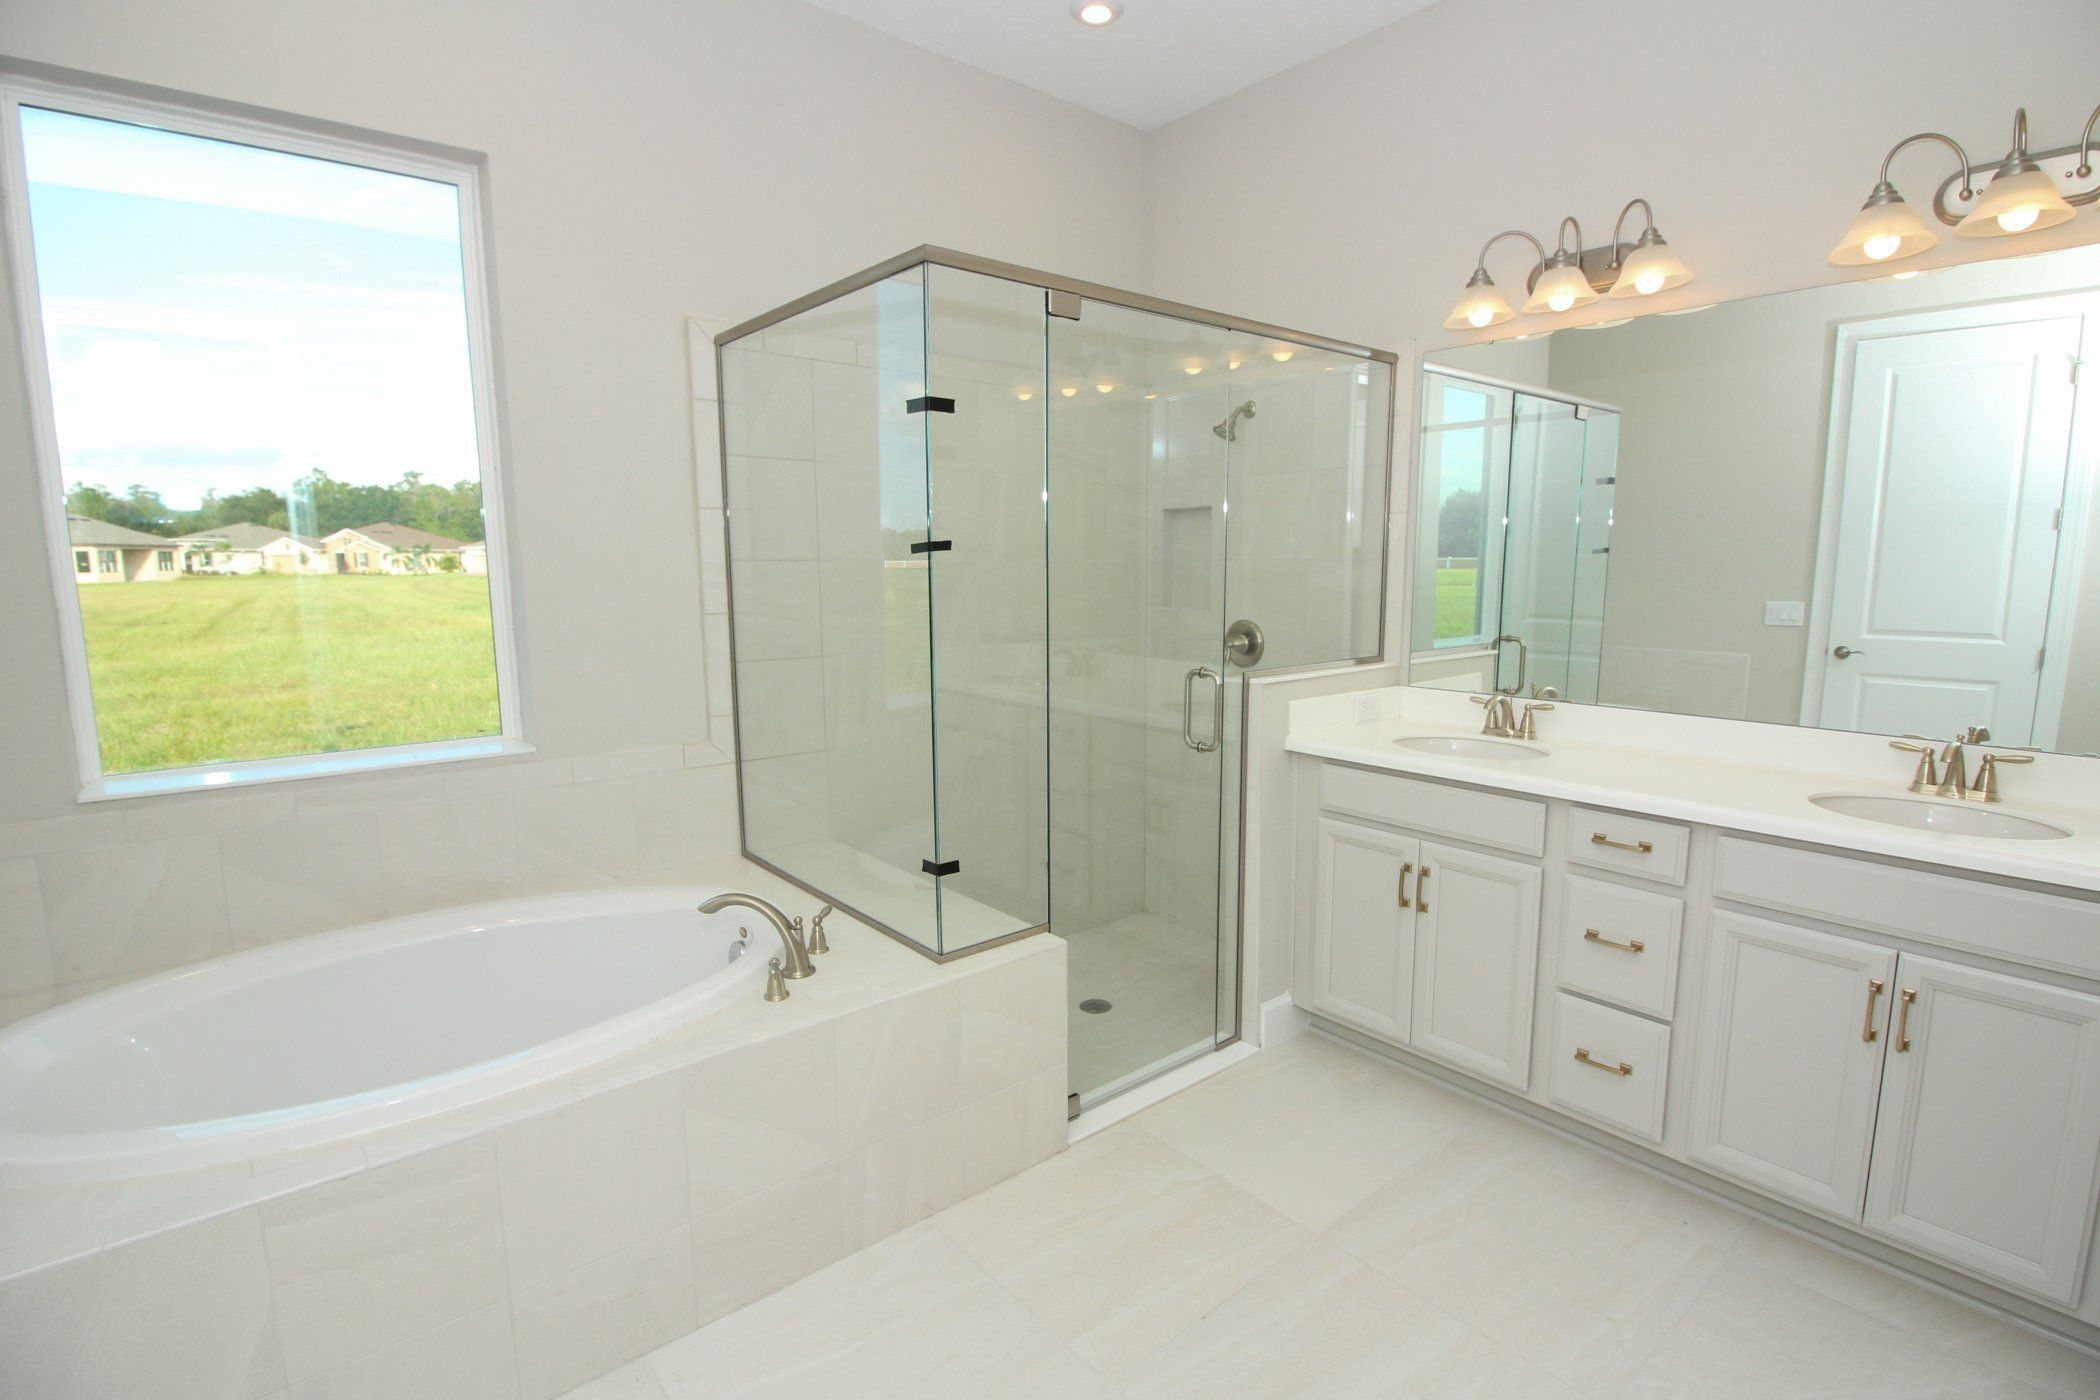 Bathroom featured in the Letizia By Taylor Morrison in Naples, FL